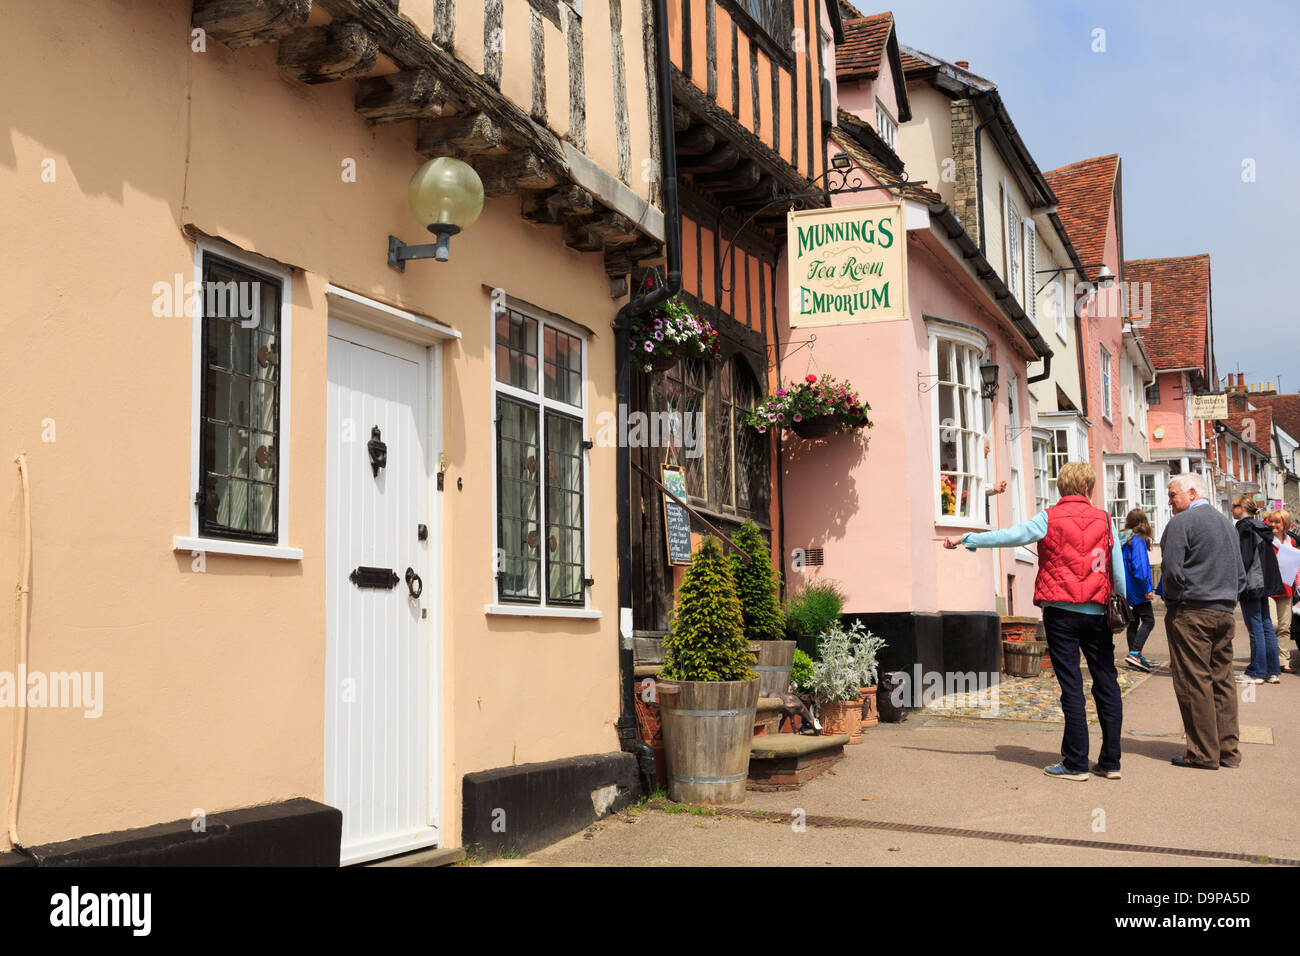 People outside Munnings Tea Room Emporium in the historic village centre. High Street, Lavenham, Suffolk, England, - Stock Image